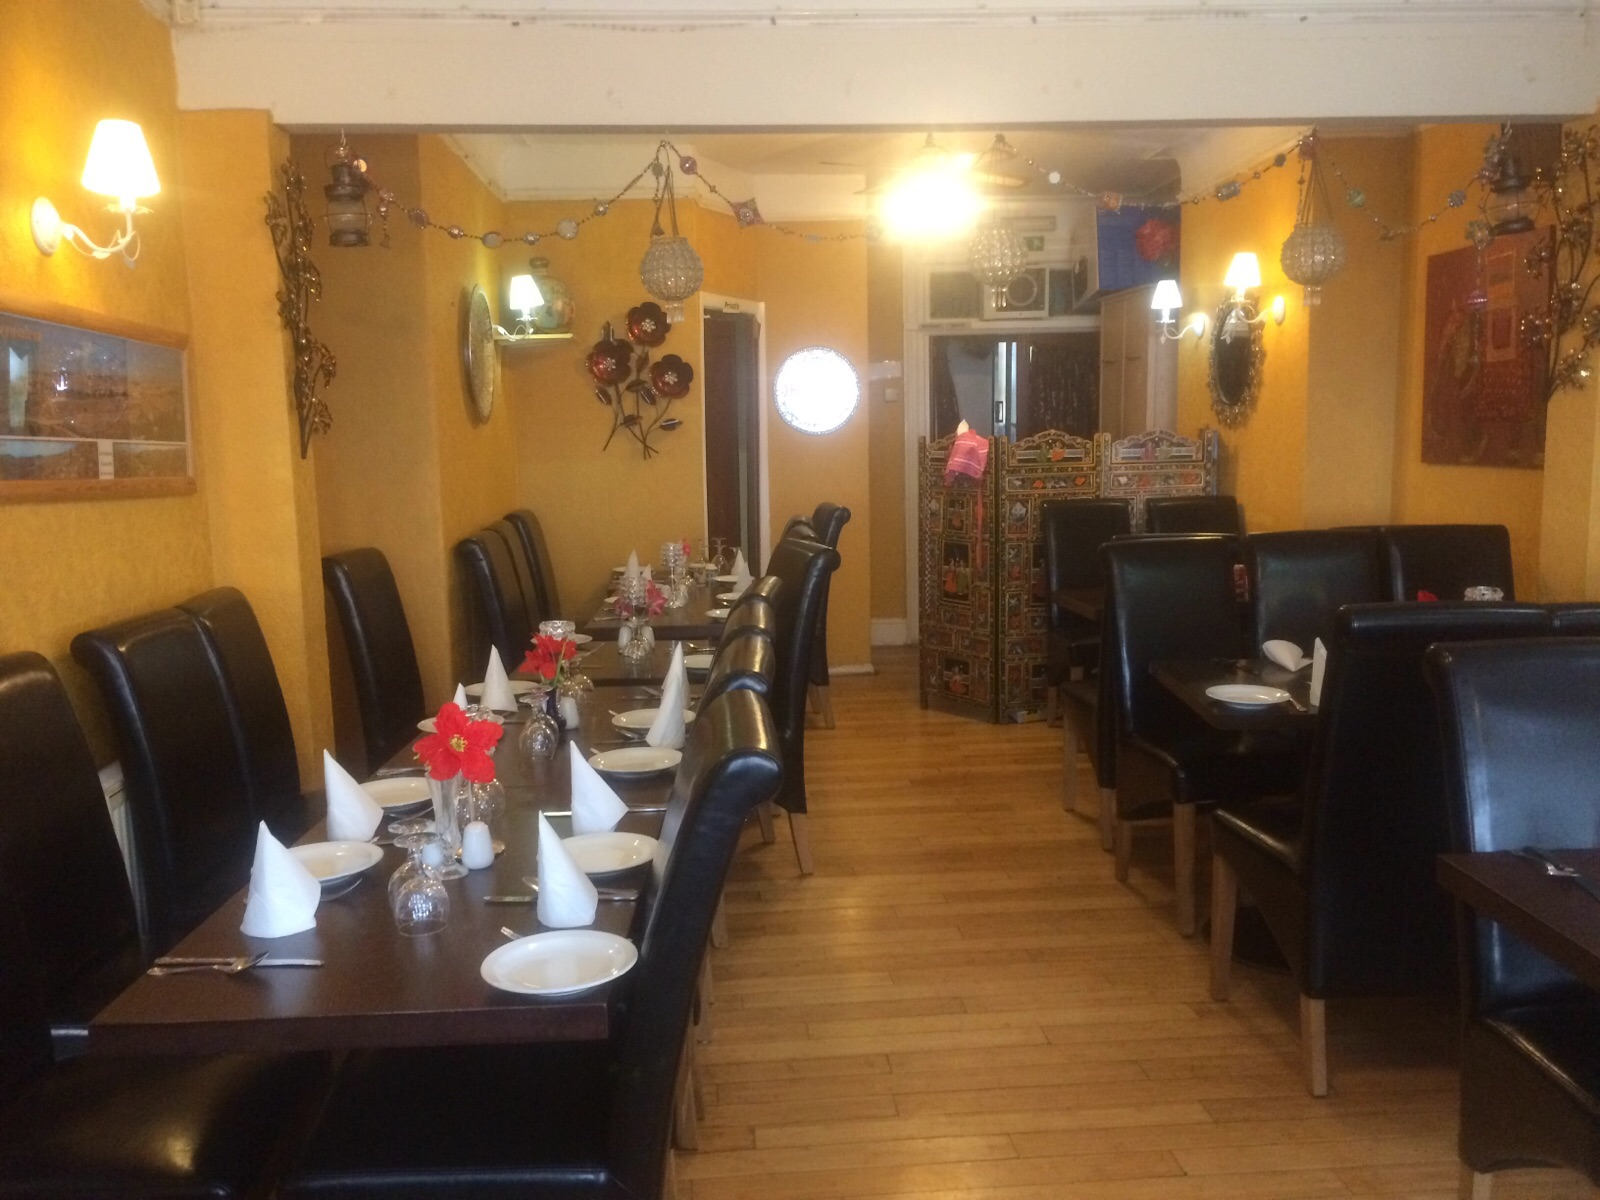 INDIAN RESTAURANT PLUS ACCOMMODATION IN COASTAL TOWN OF KENT.